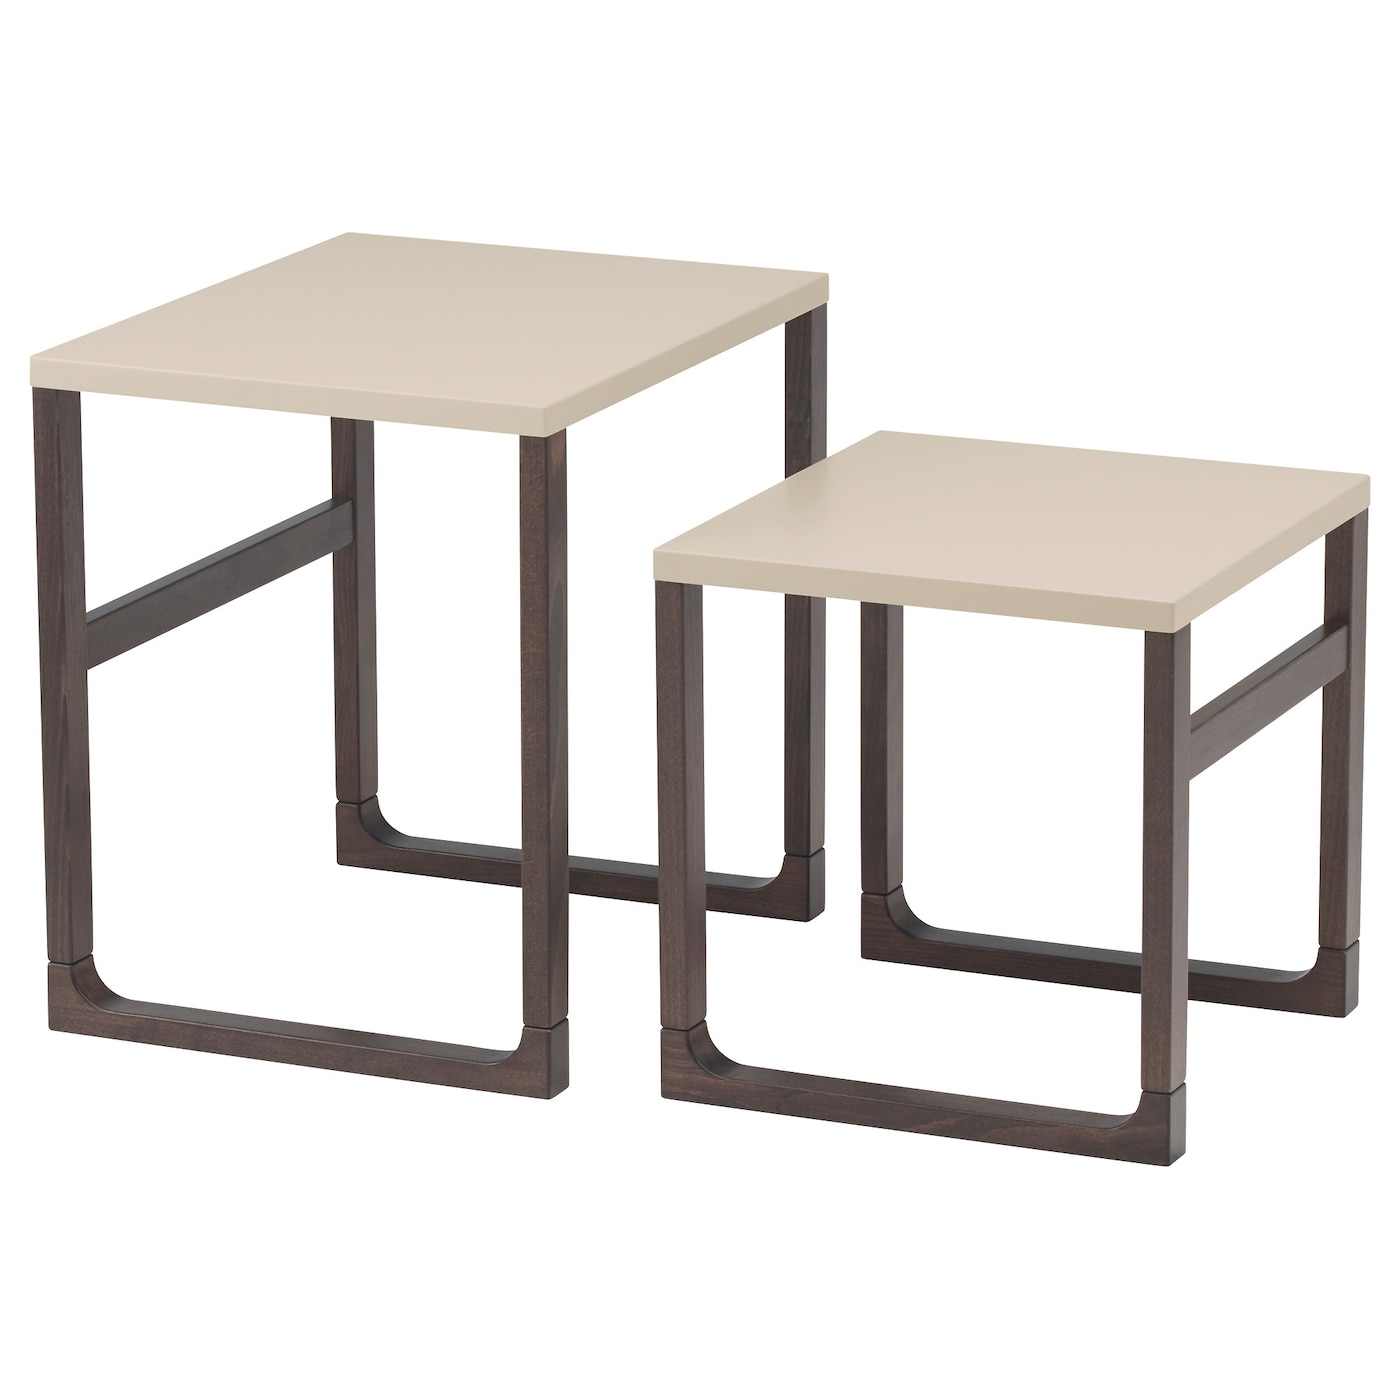 Rissna nest of tables set of 2 beige ikea for Set de table ikea